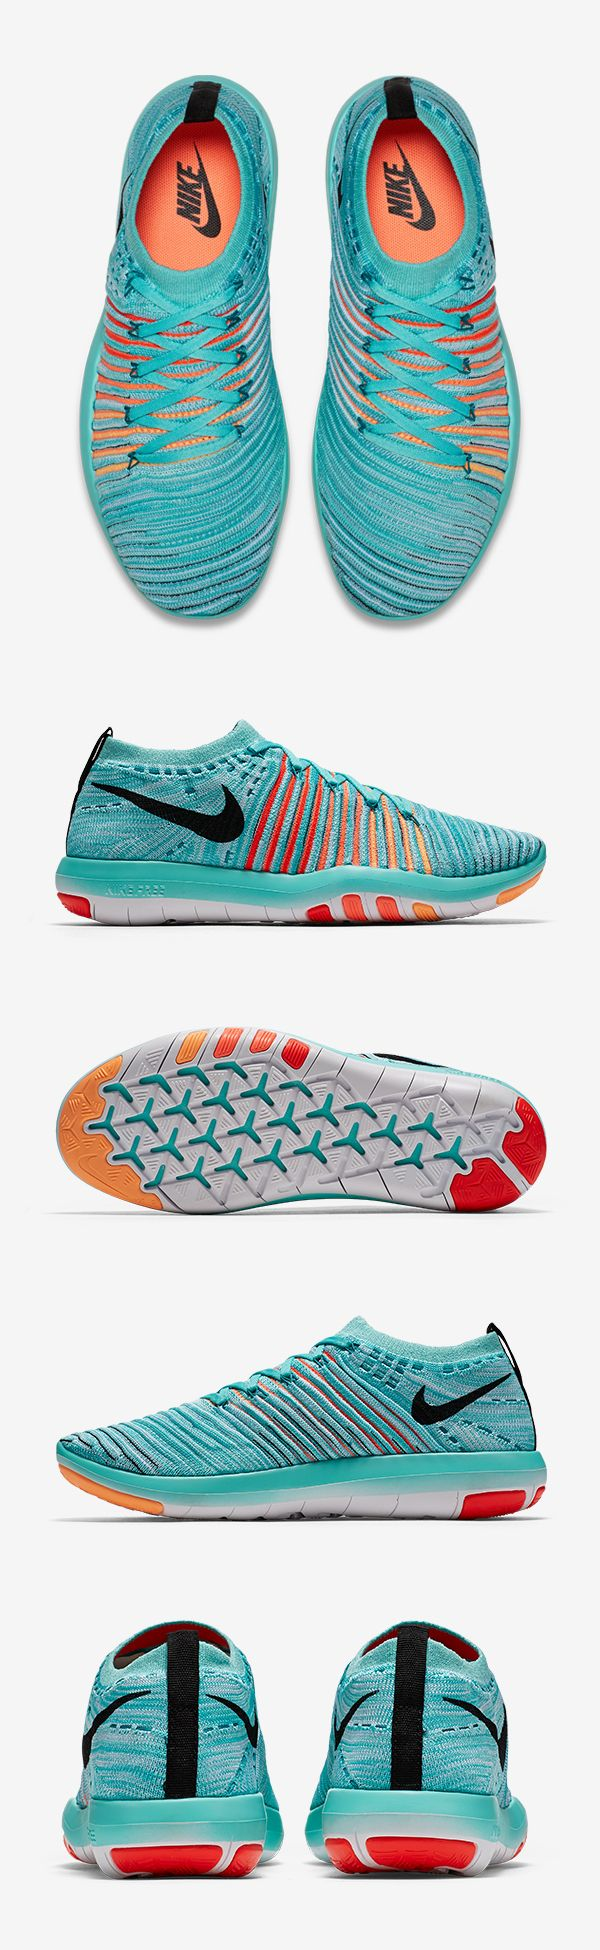 Nike Free, Womens Nike Shoes, not only fashion but also amazing price $21, Get it now!  Good shoes are a must.